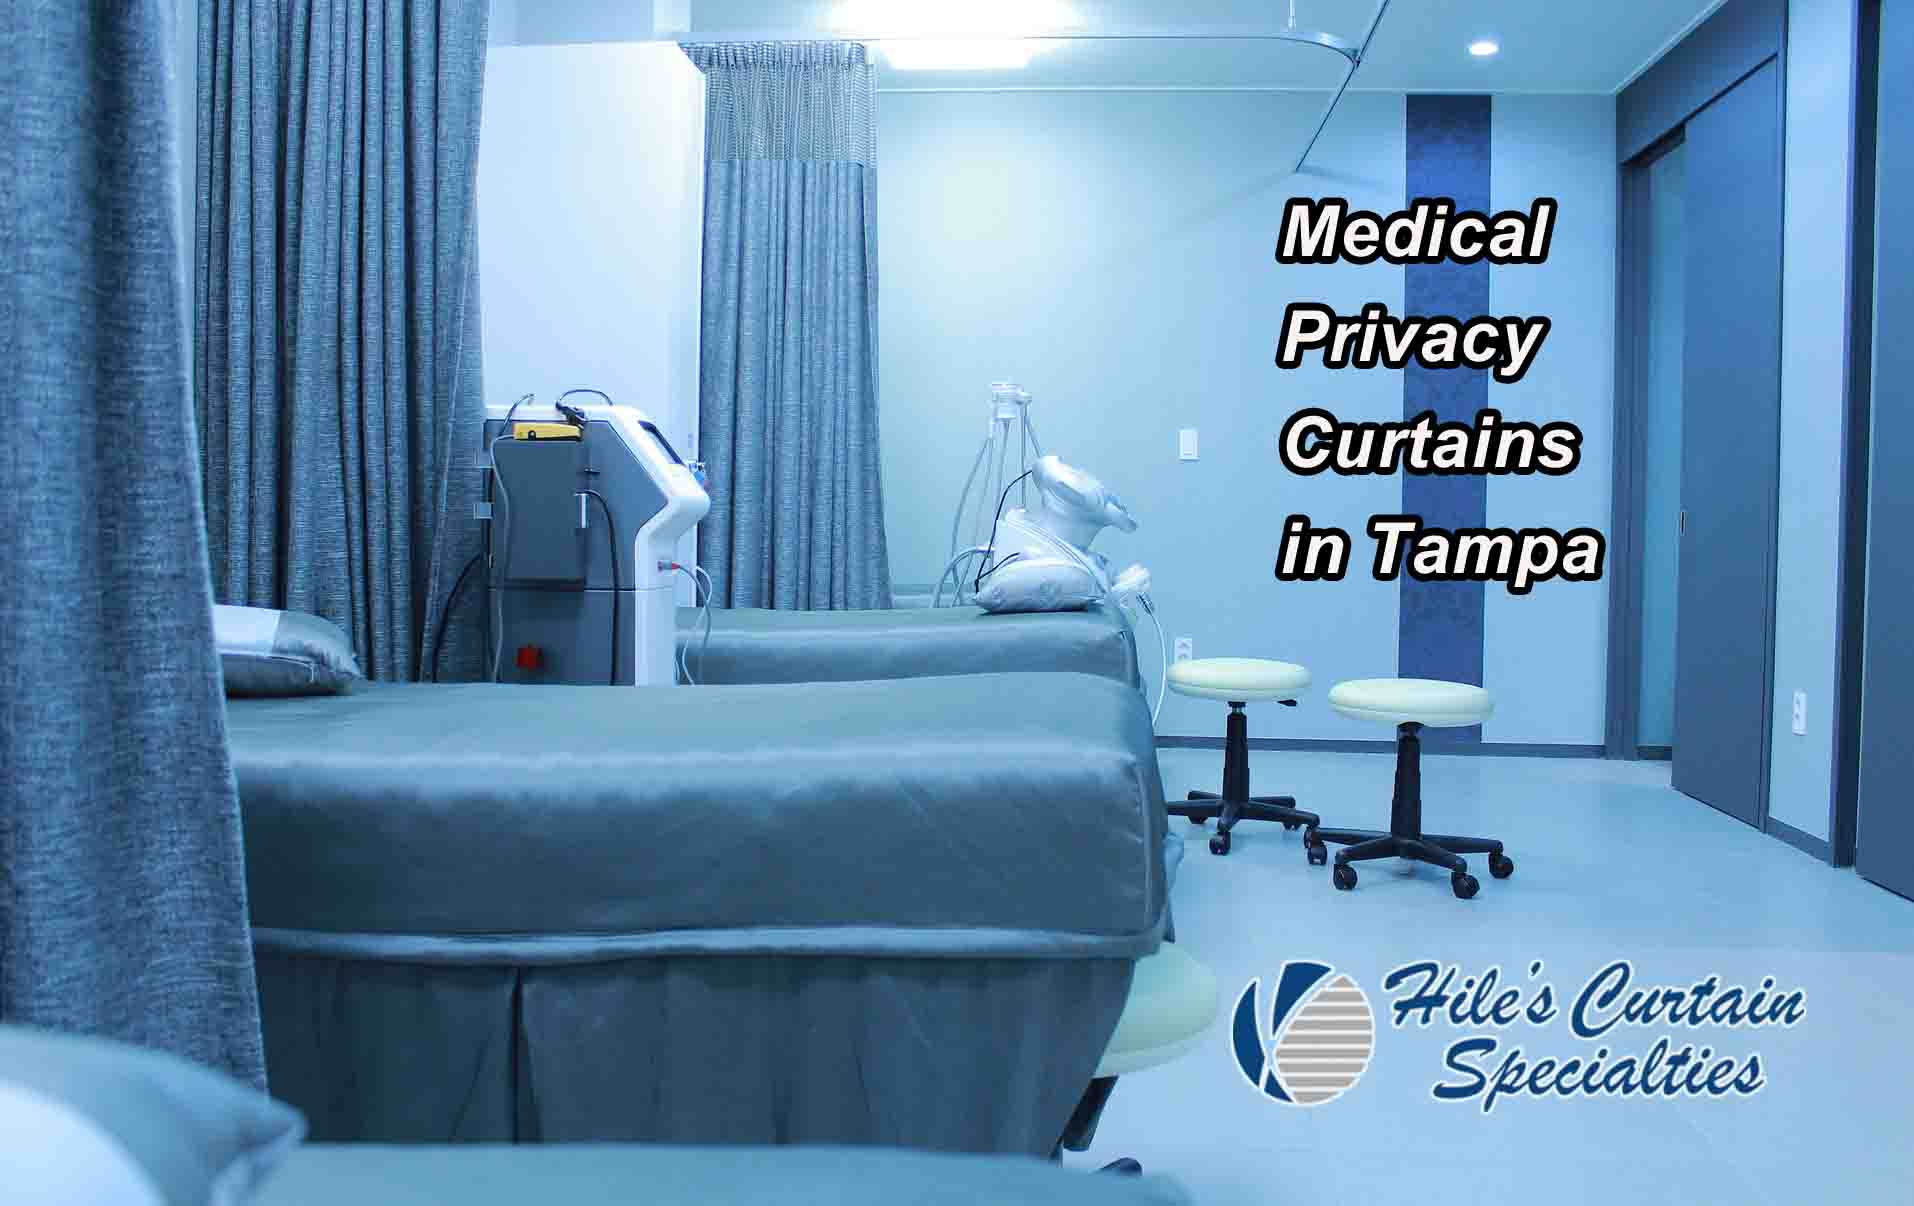 Medical Privacy Curtains - Tampa